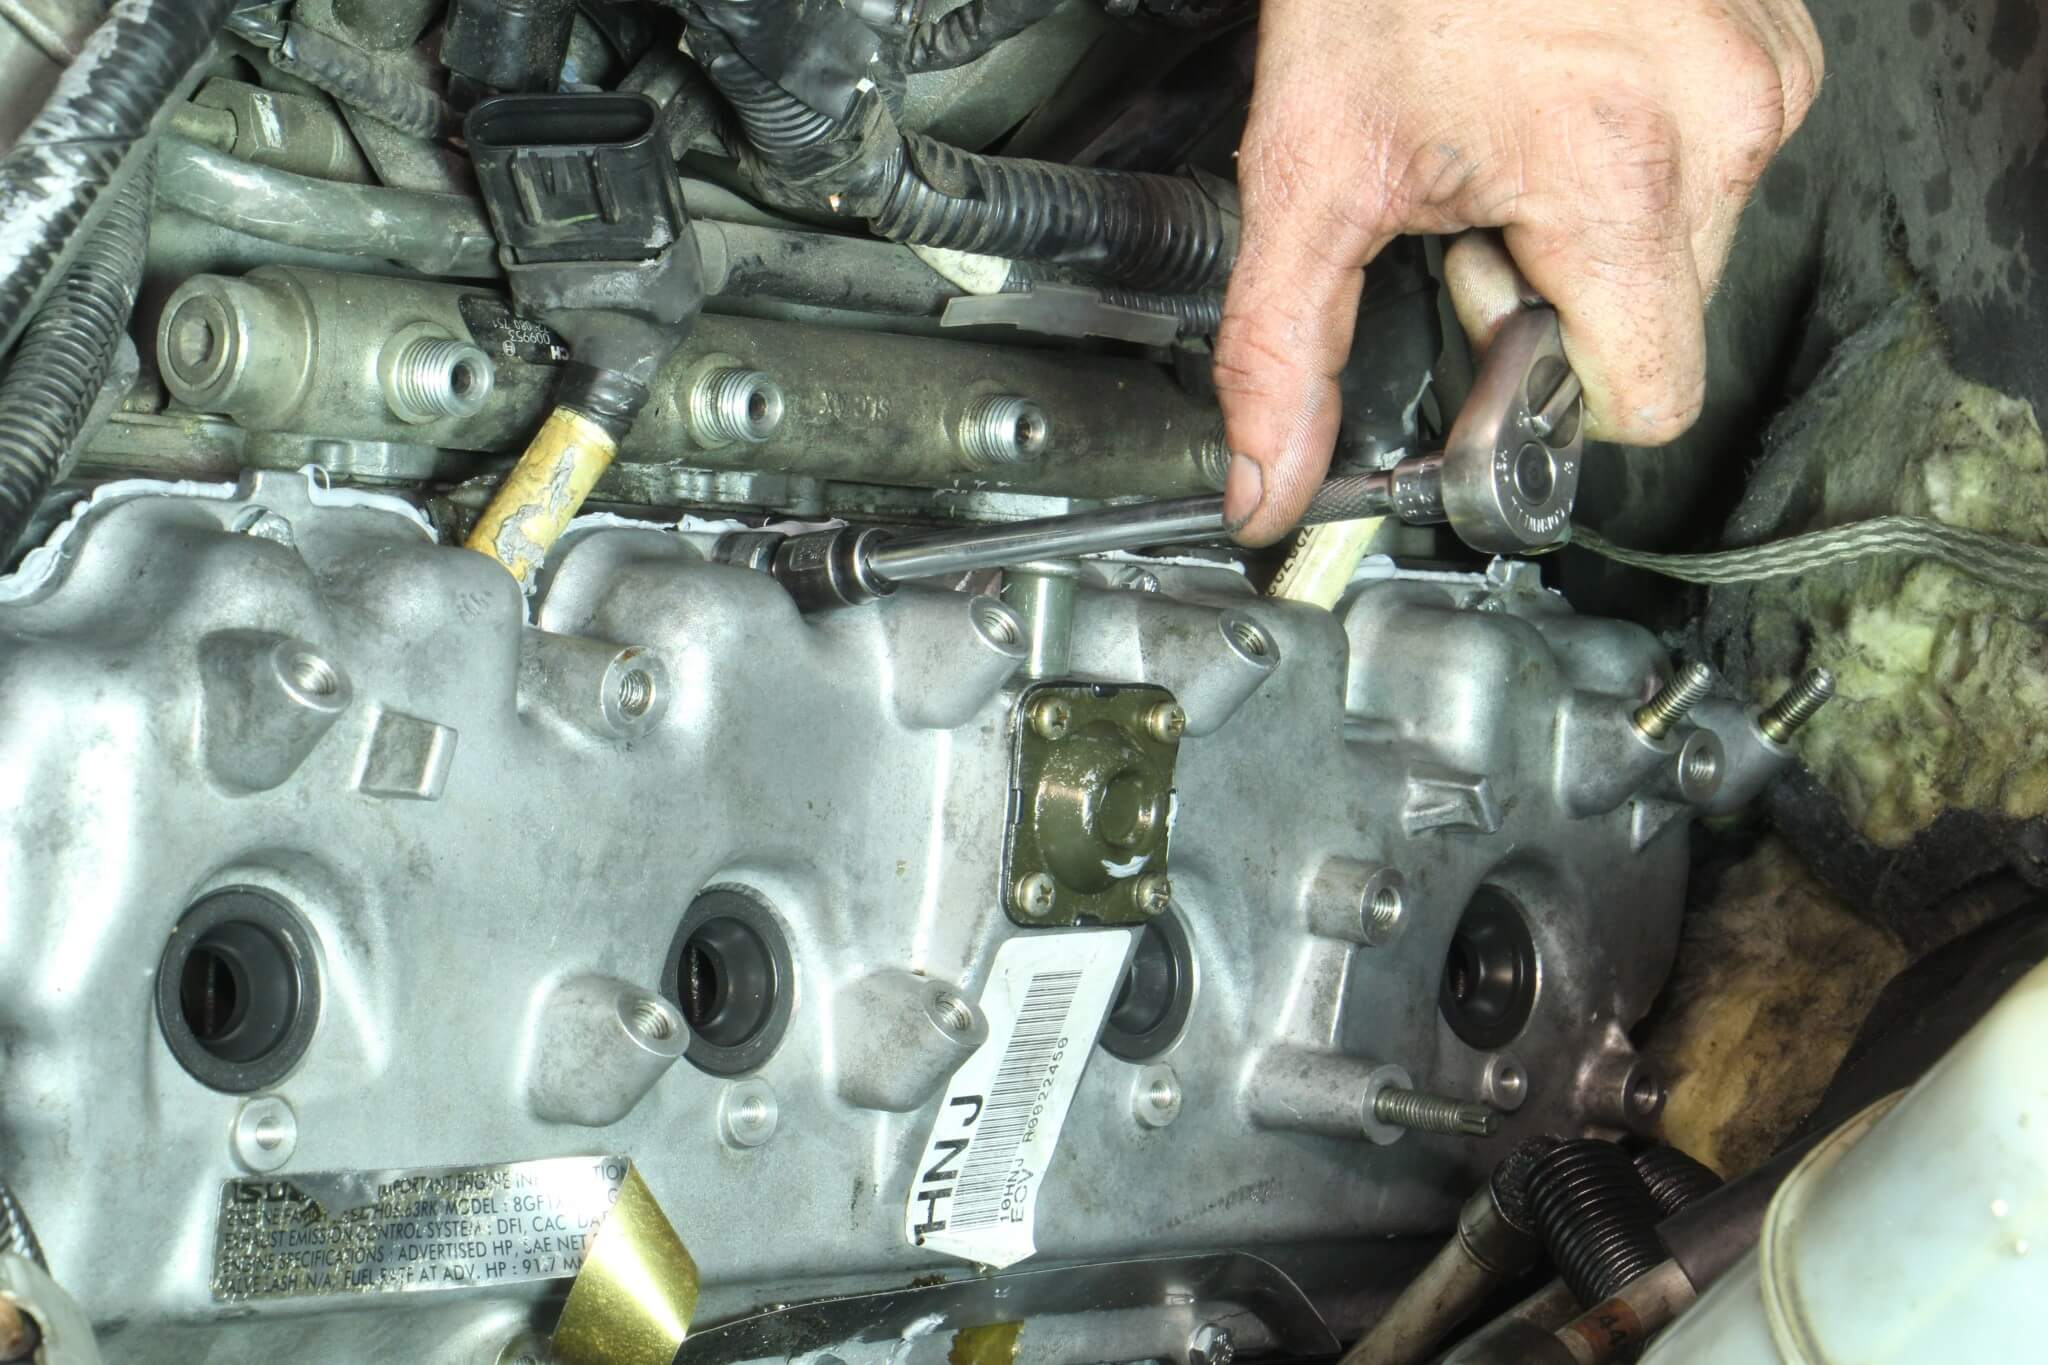 20. After the silicone was given some time to cure, the top valve cover was then aligned and secured using a 10mm socket.